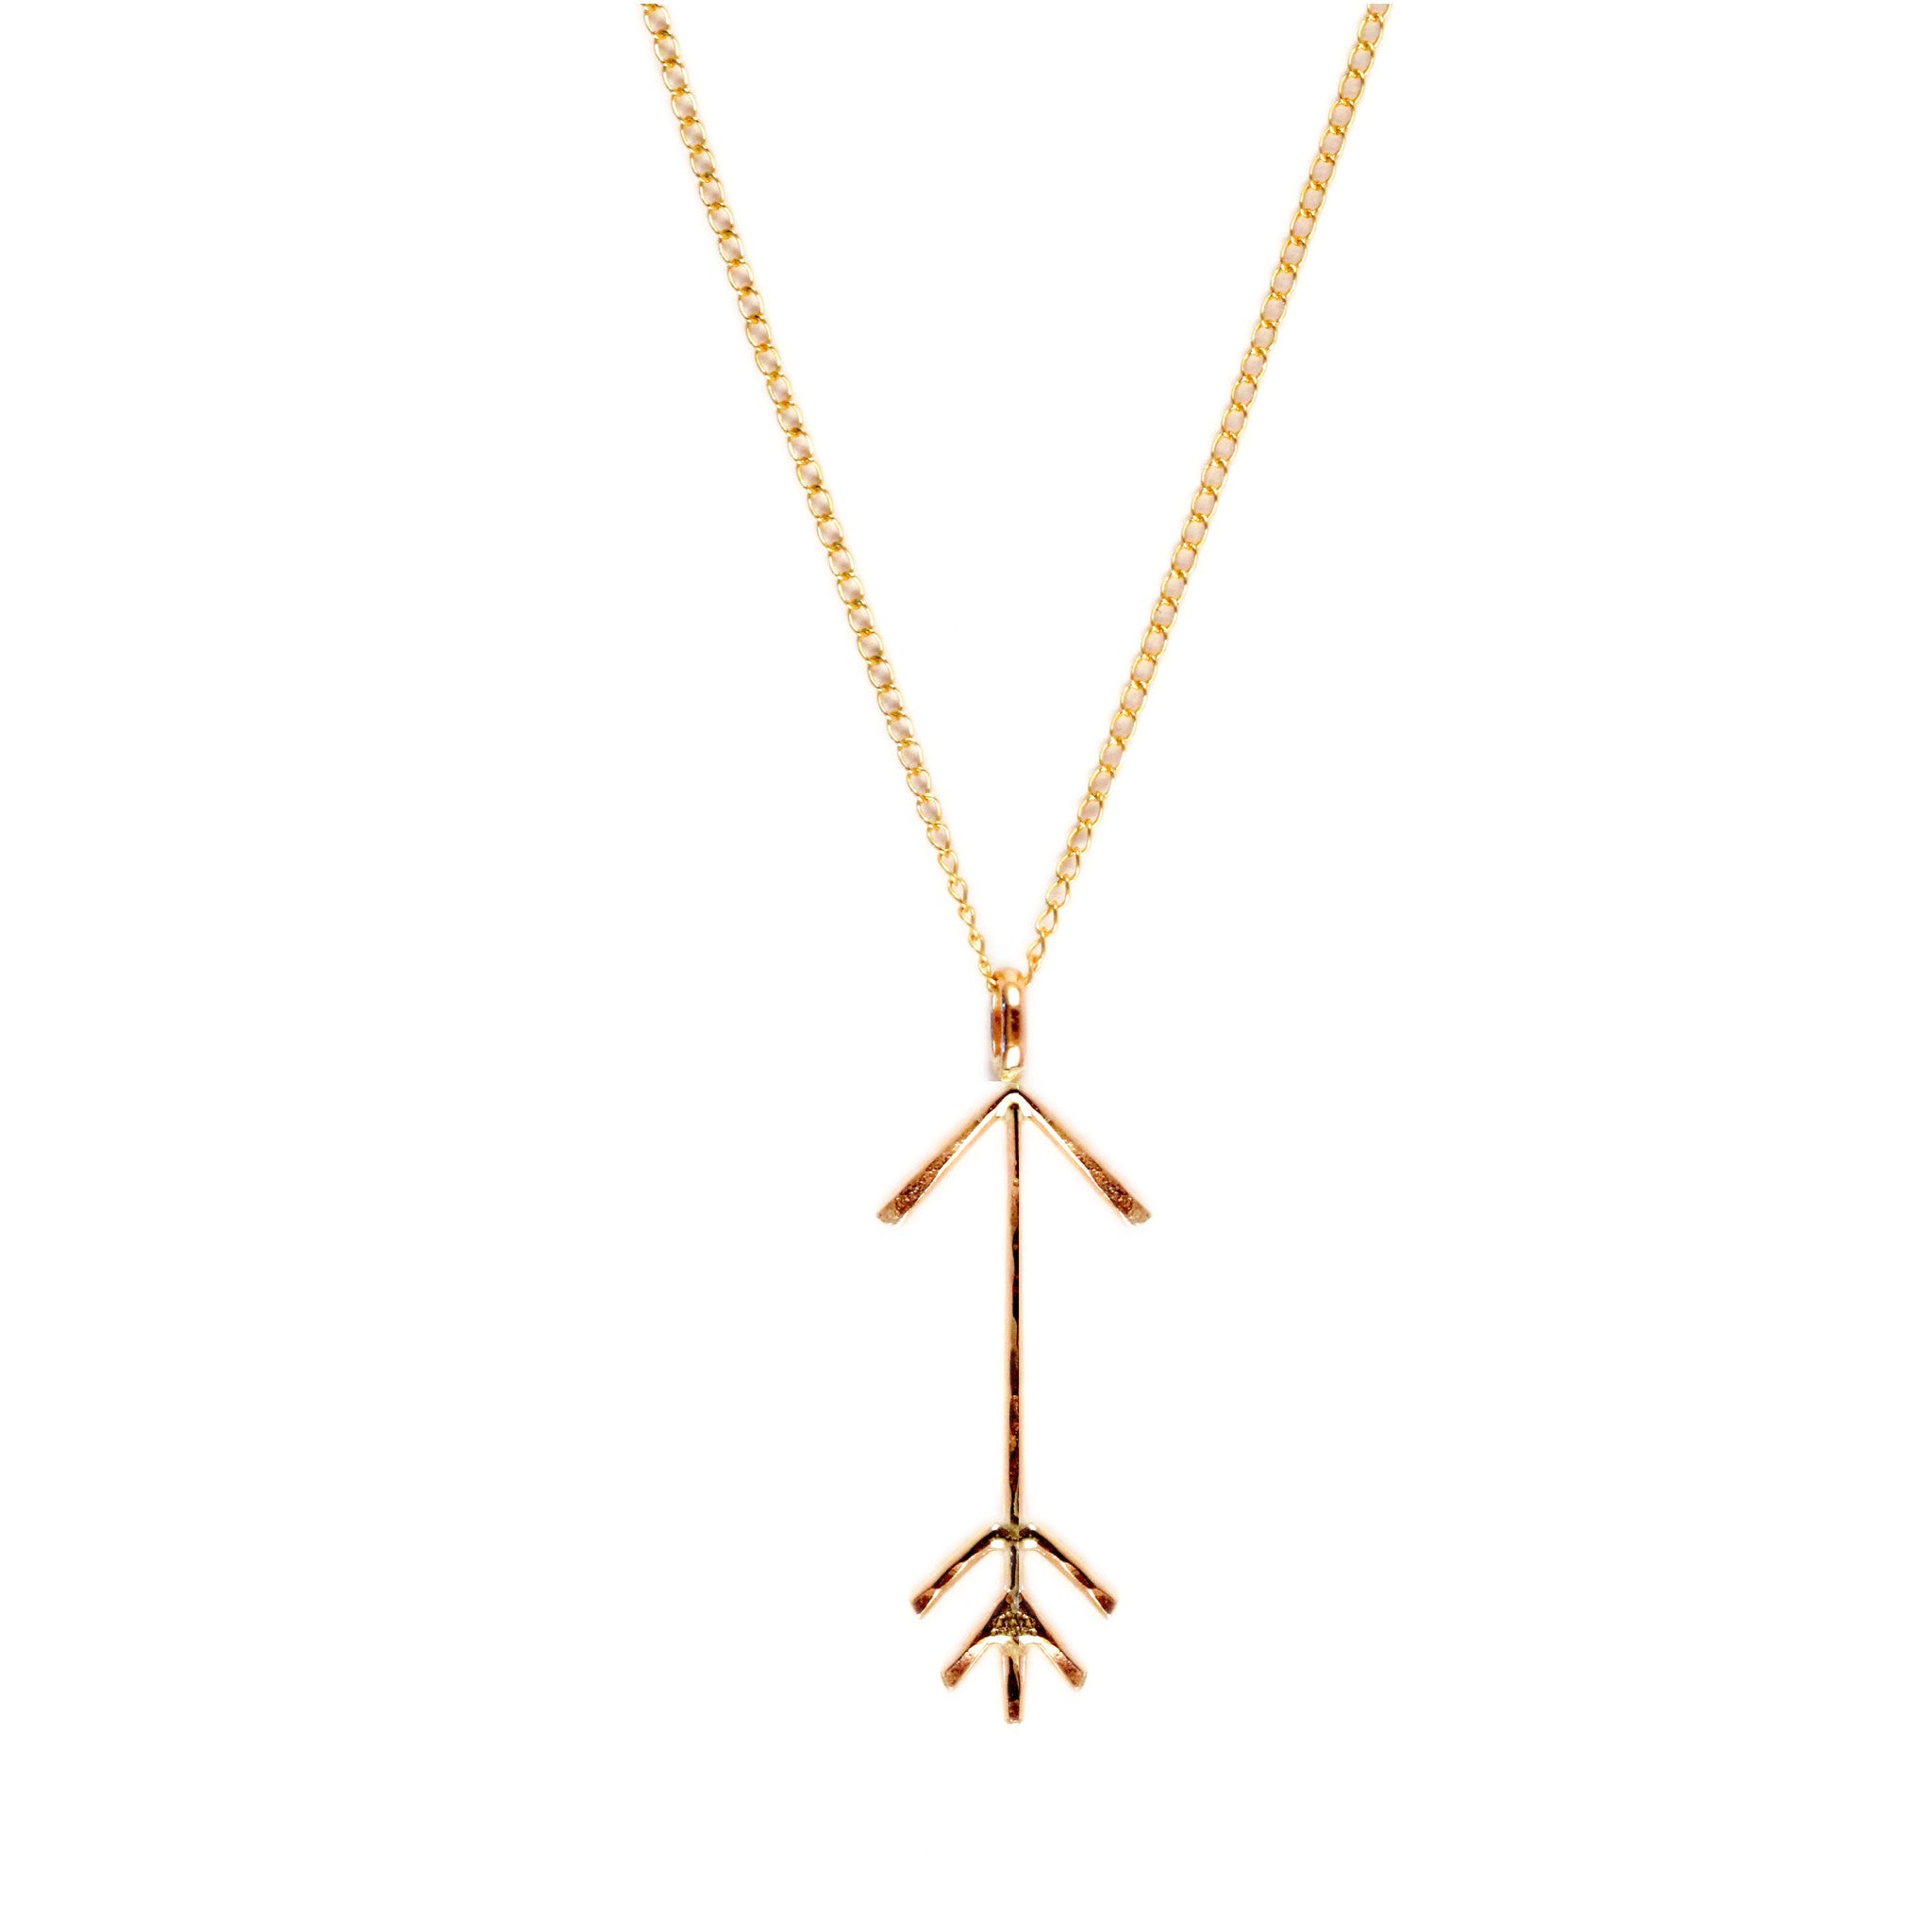 Hammered Arrow Pendant Necklace